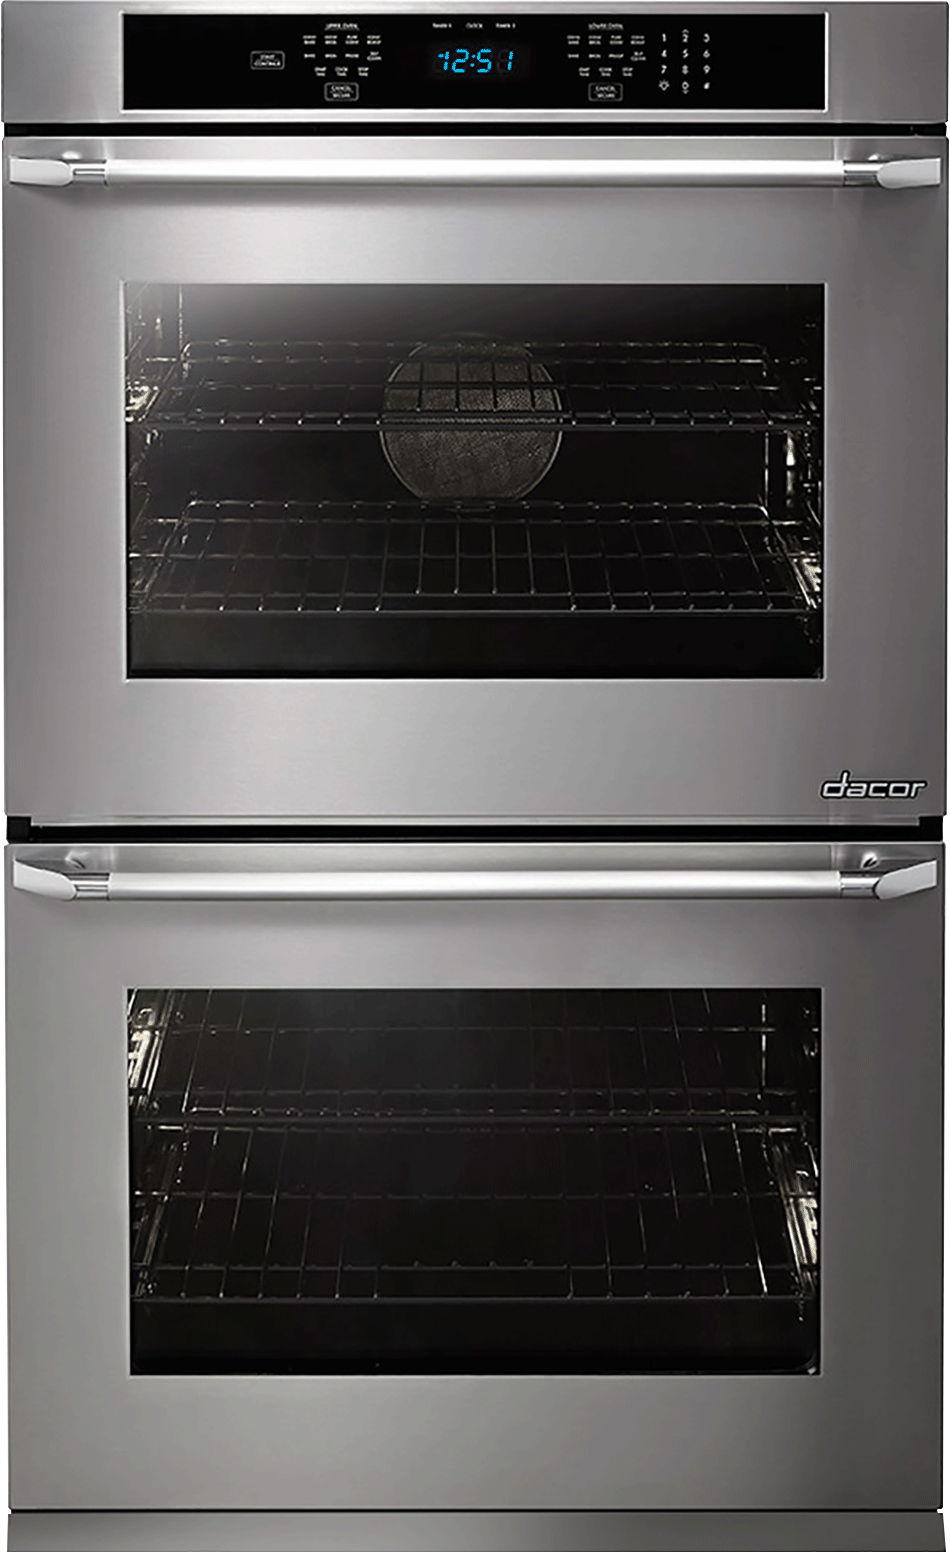 Dacor Cps130 Range Wiring Diagram Double Wall Oven Dto 950x1552